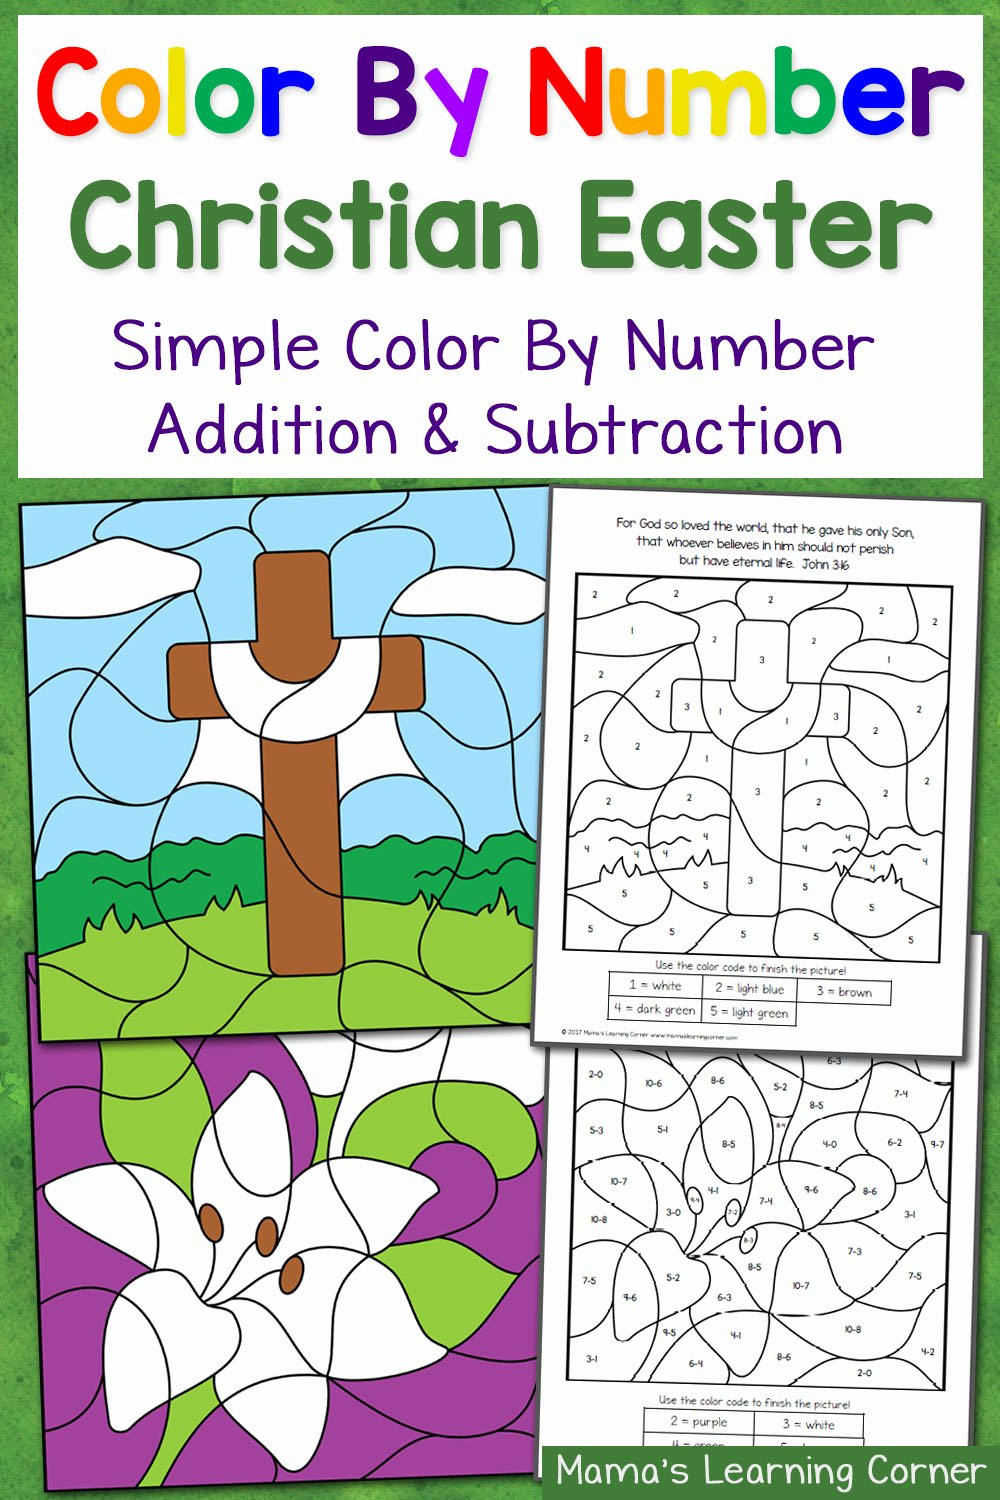 Christian Easter Worksheets for Preschoolers Awesome Christian Easter Color by Number Worksheets Mamas Learning